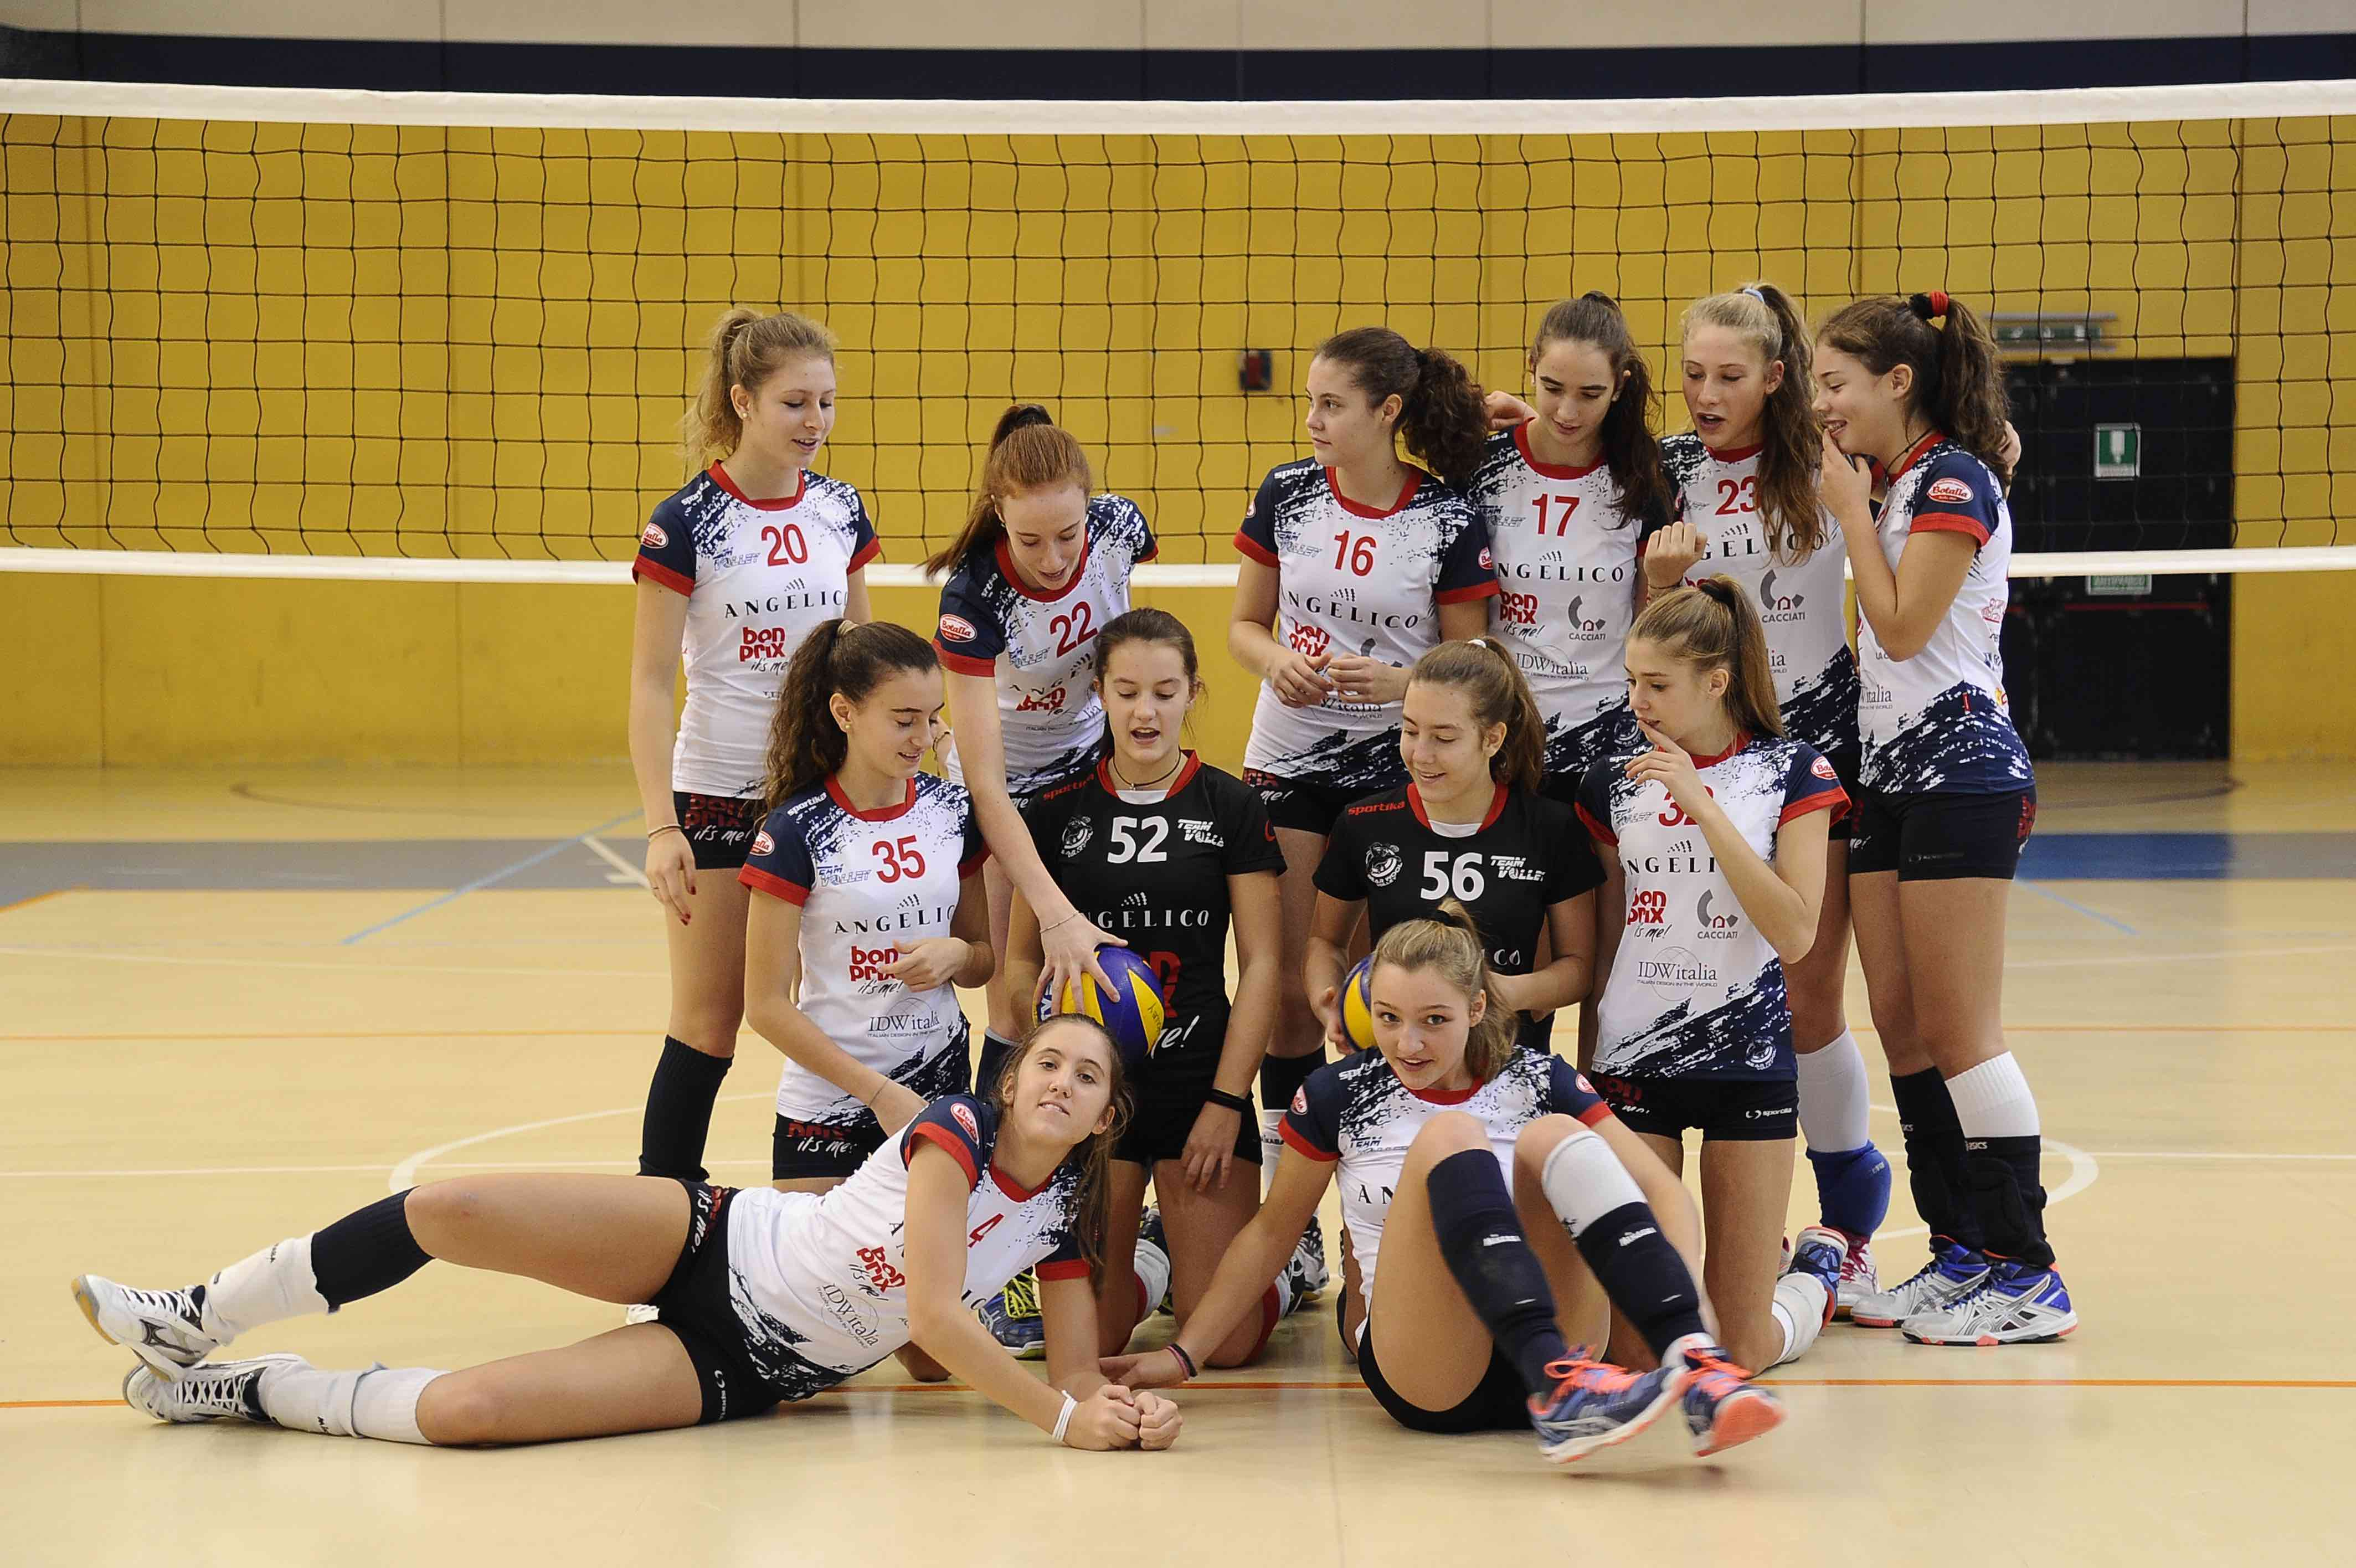 Botalla Formaggi Teamvolley ….con onore